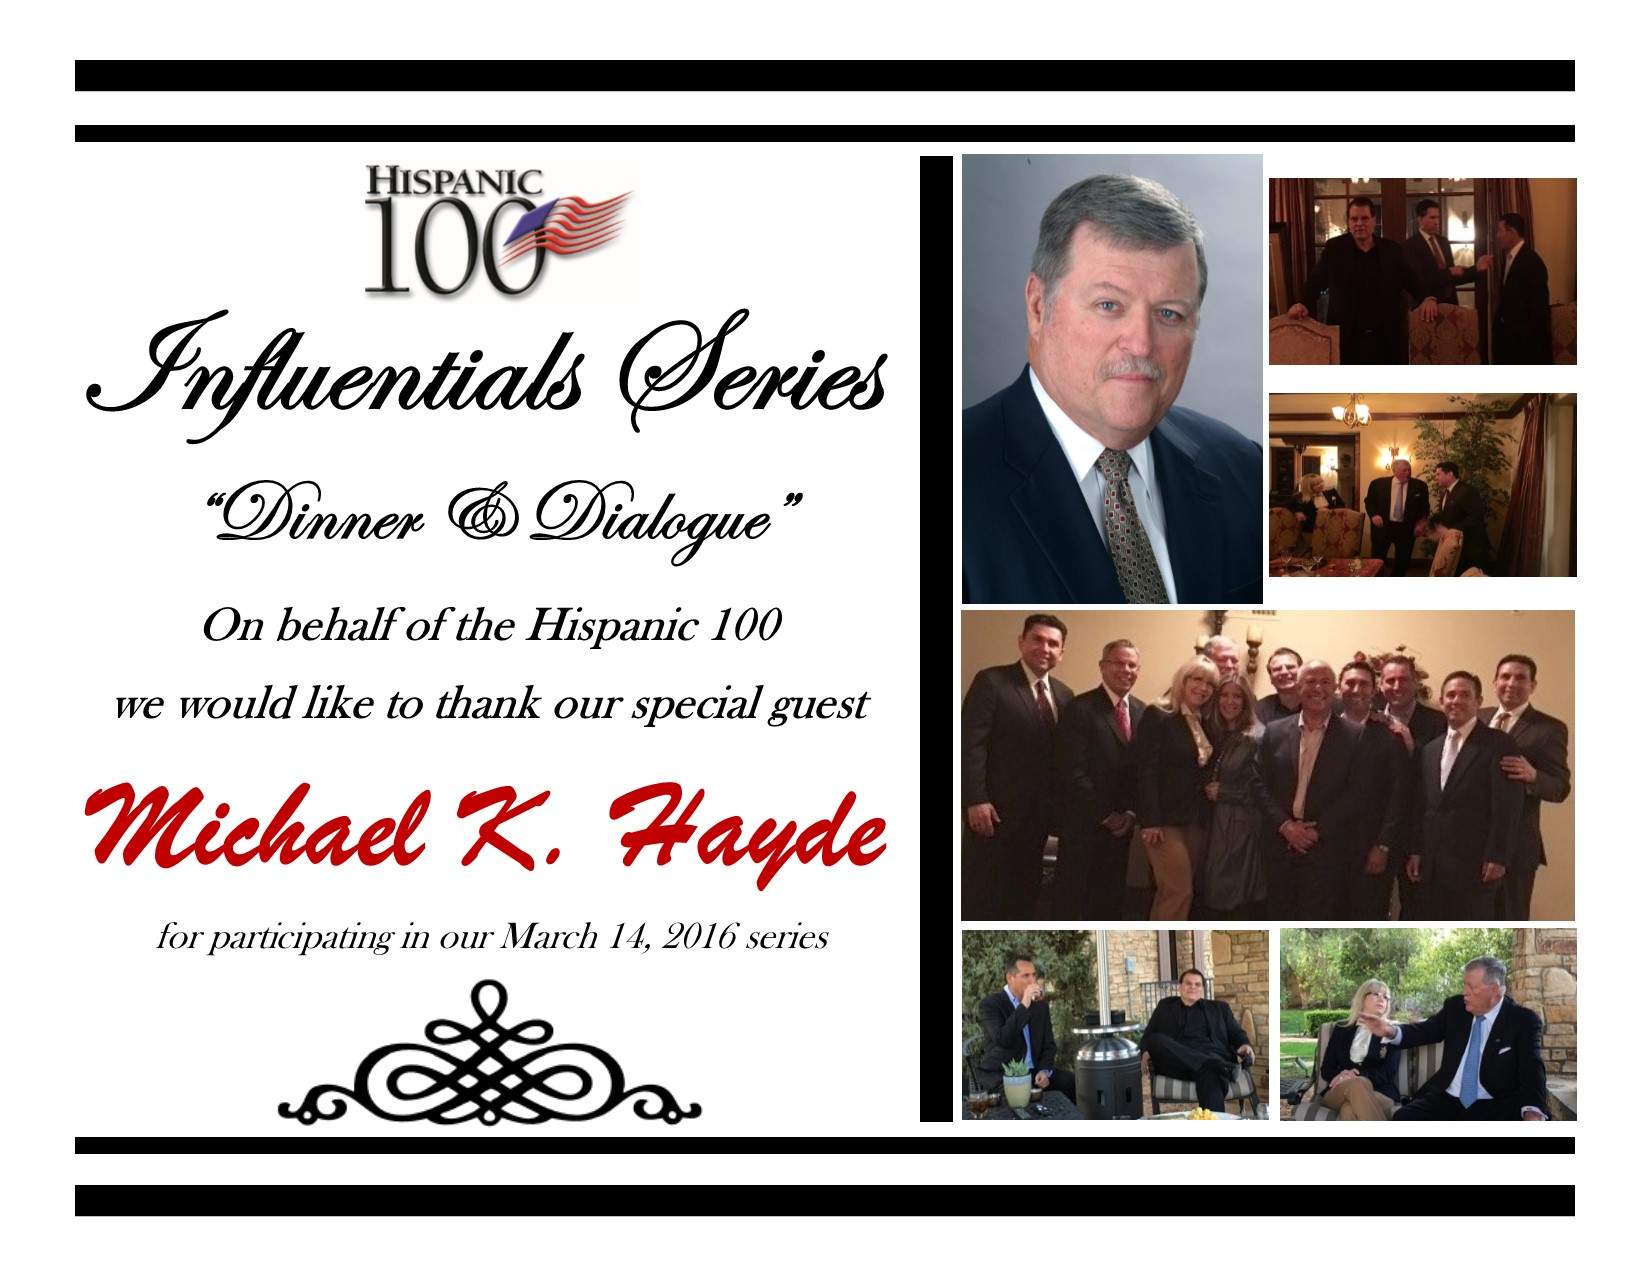 Influentials Series_Mike Hayde_March 14, 2016_Thank you